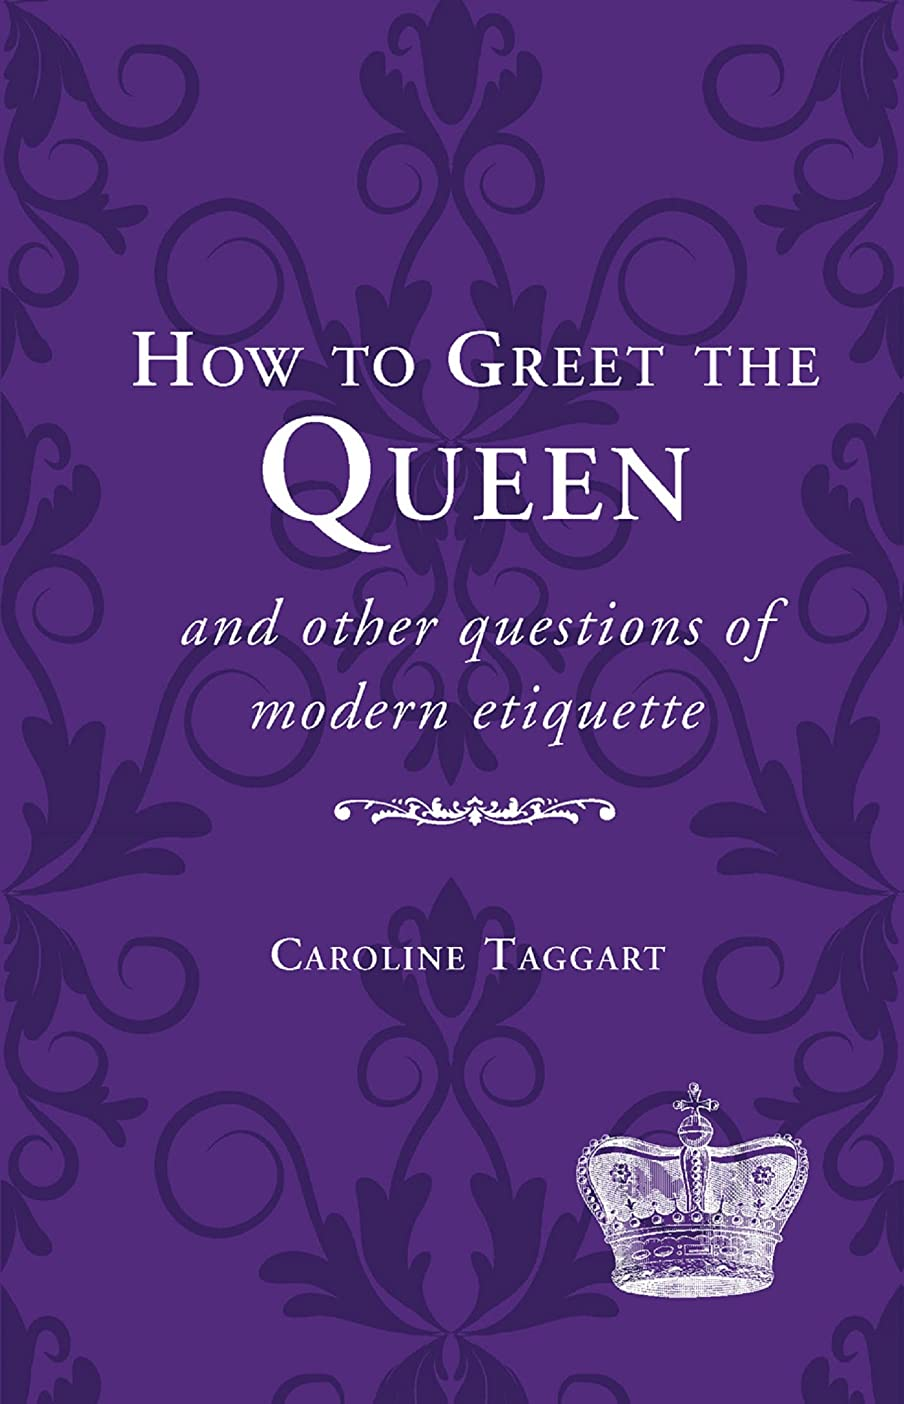 発症オープニングパシフィックHow to Greet the Queen: and Other Questions of Modern Etiquette (National Trust History & Heritage) (English Edition)